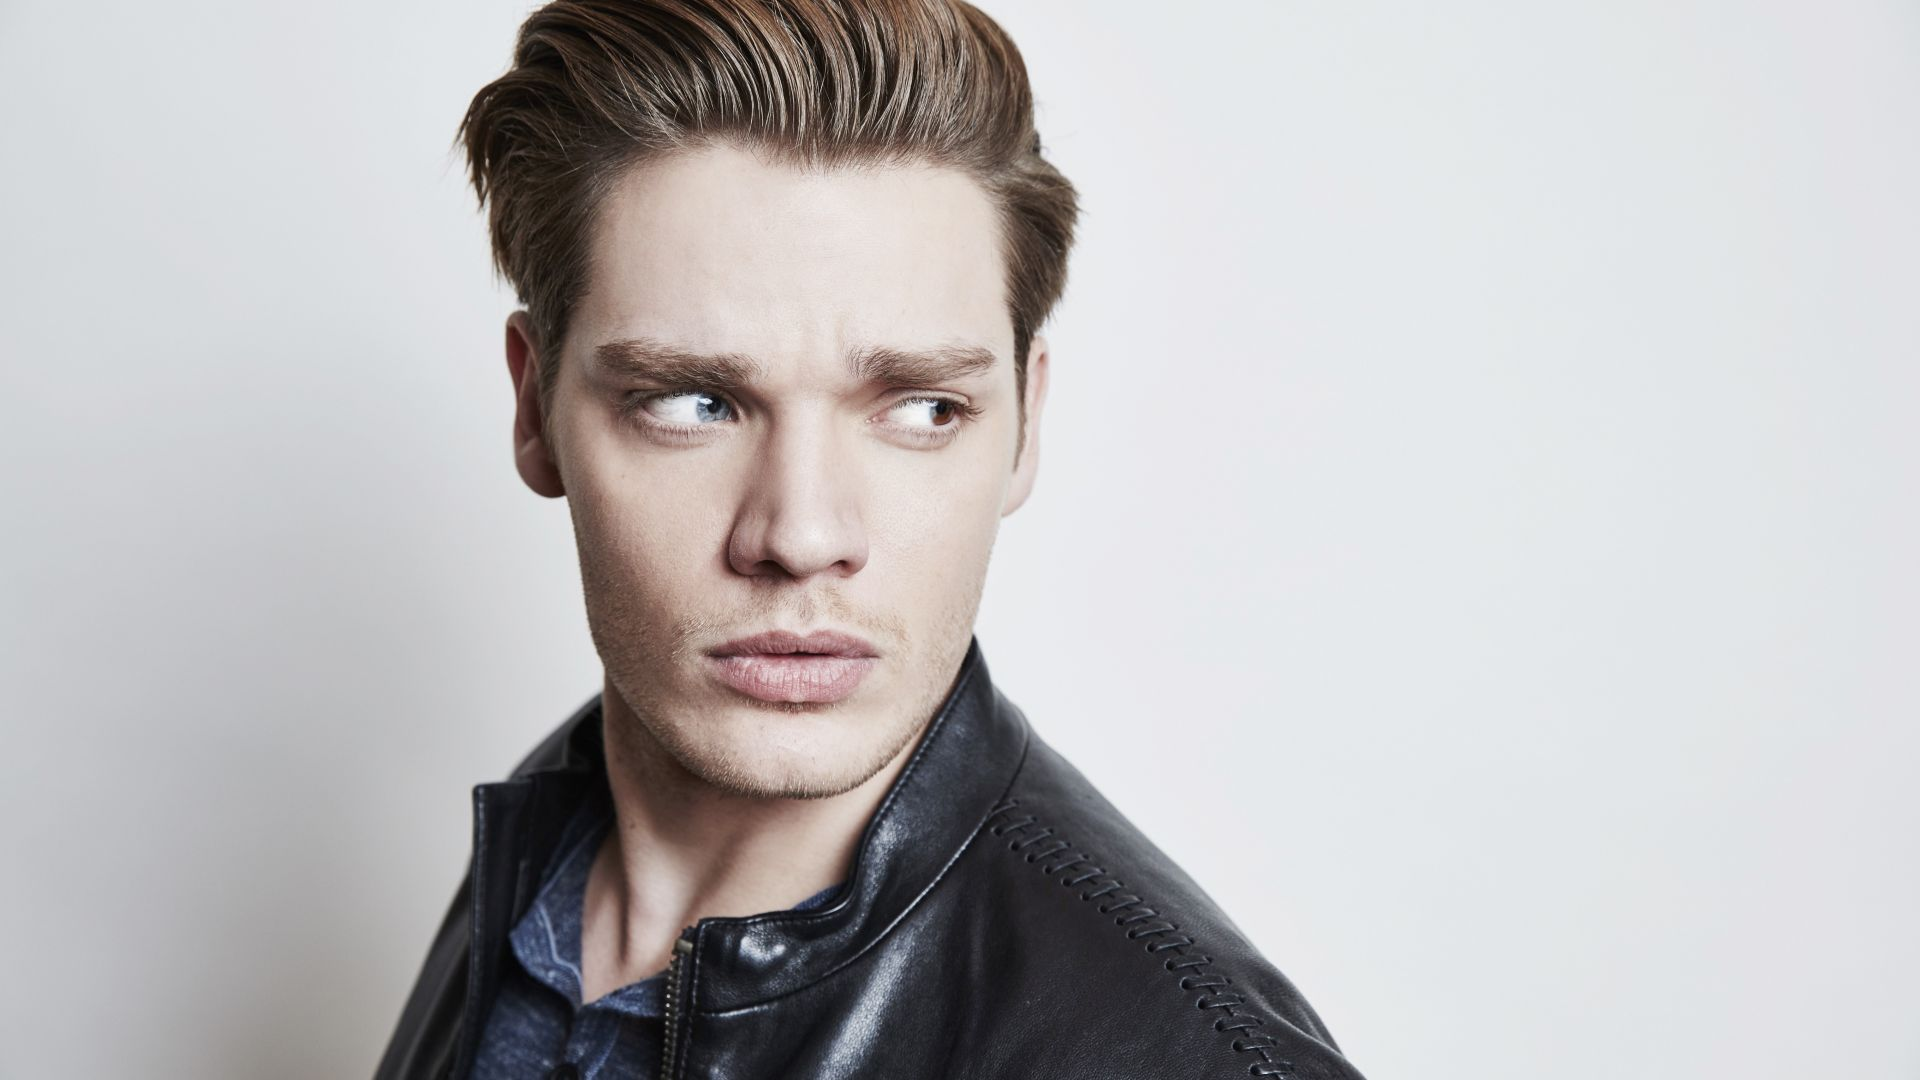 Dominic Sherwood, photo, 5k (horizontal)